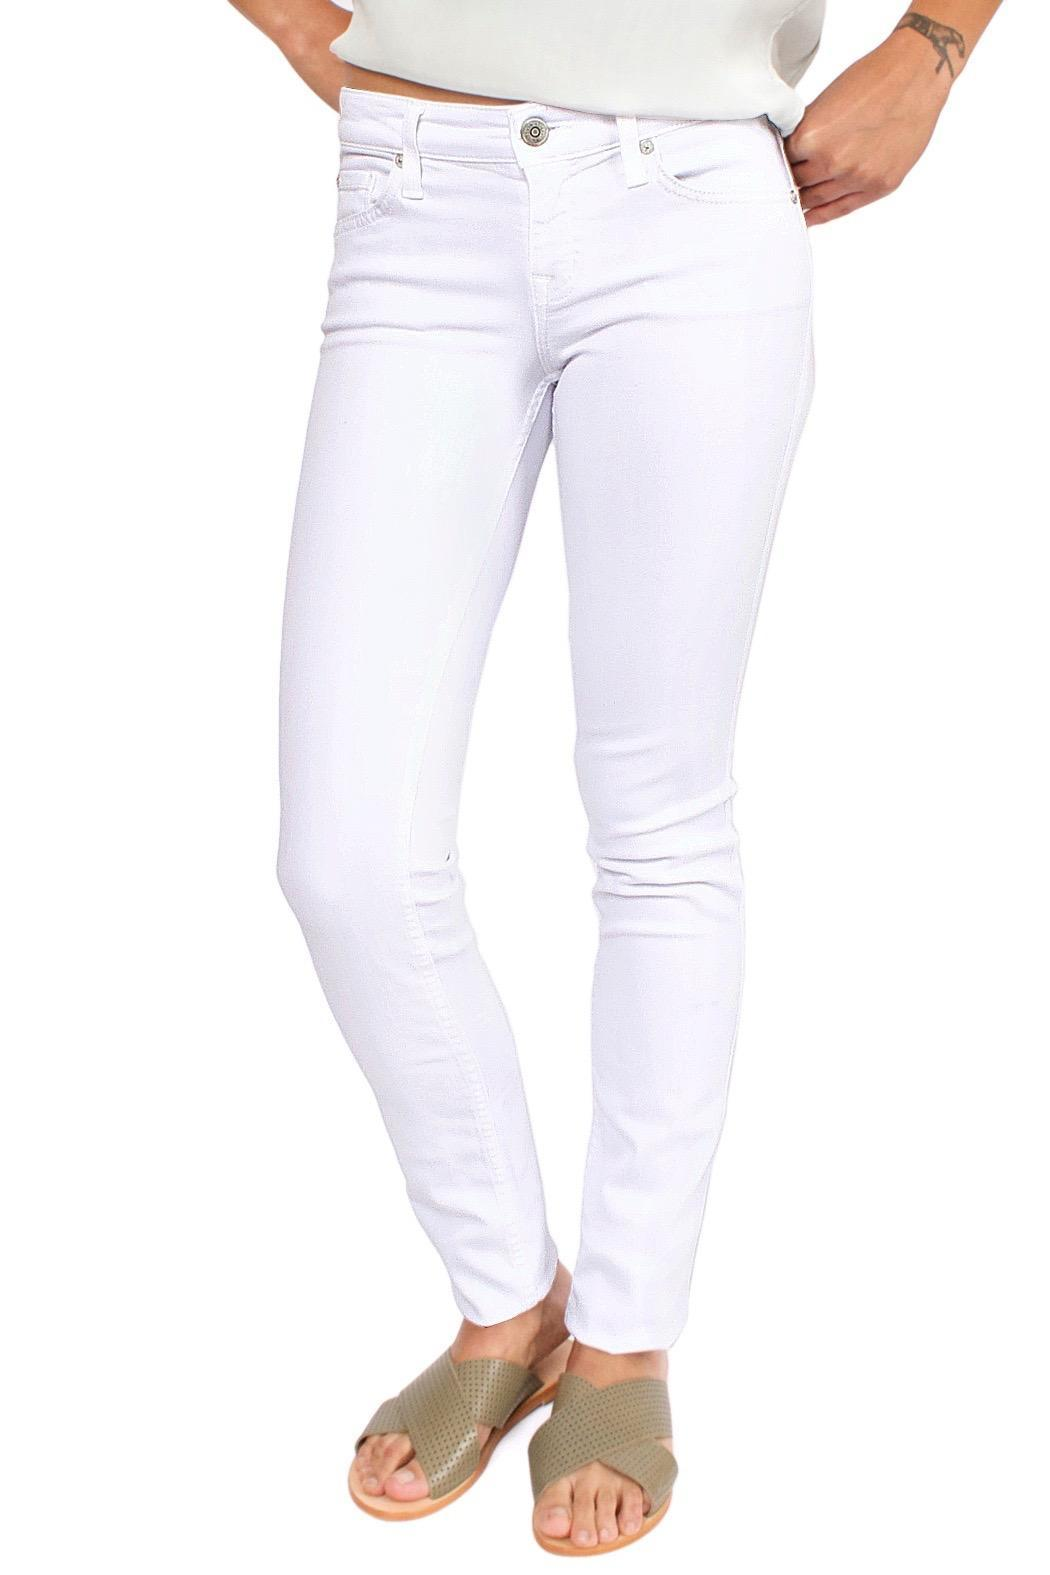 Level 99 White Skinny Jeans - Front Cropped Image